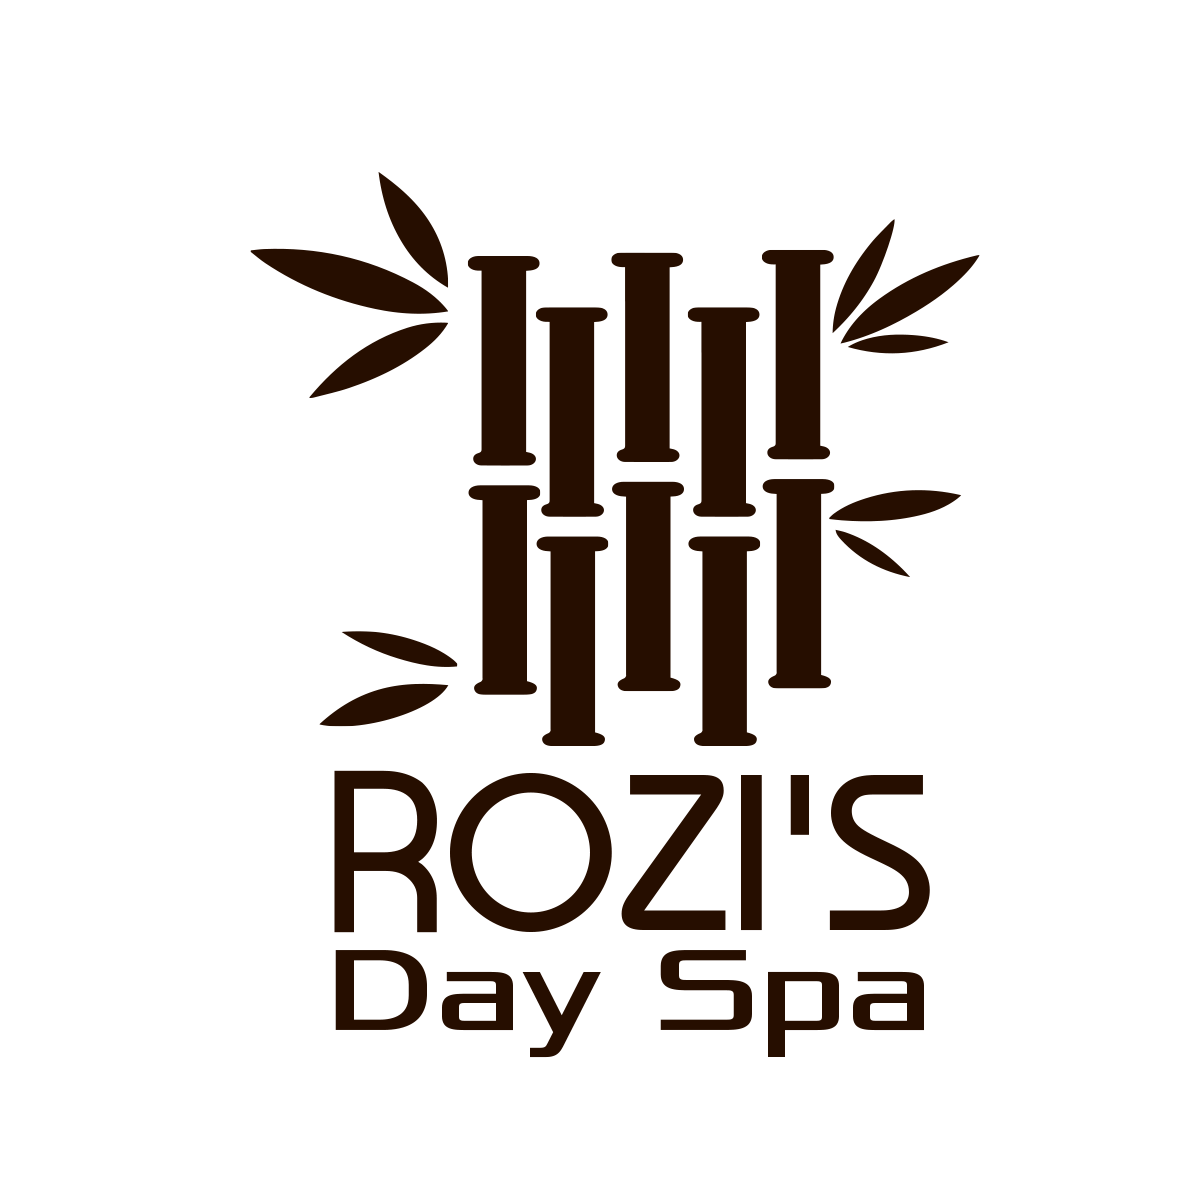 ROZI'S DAY SPA